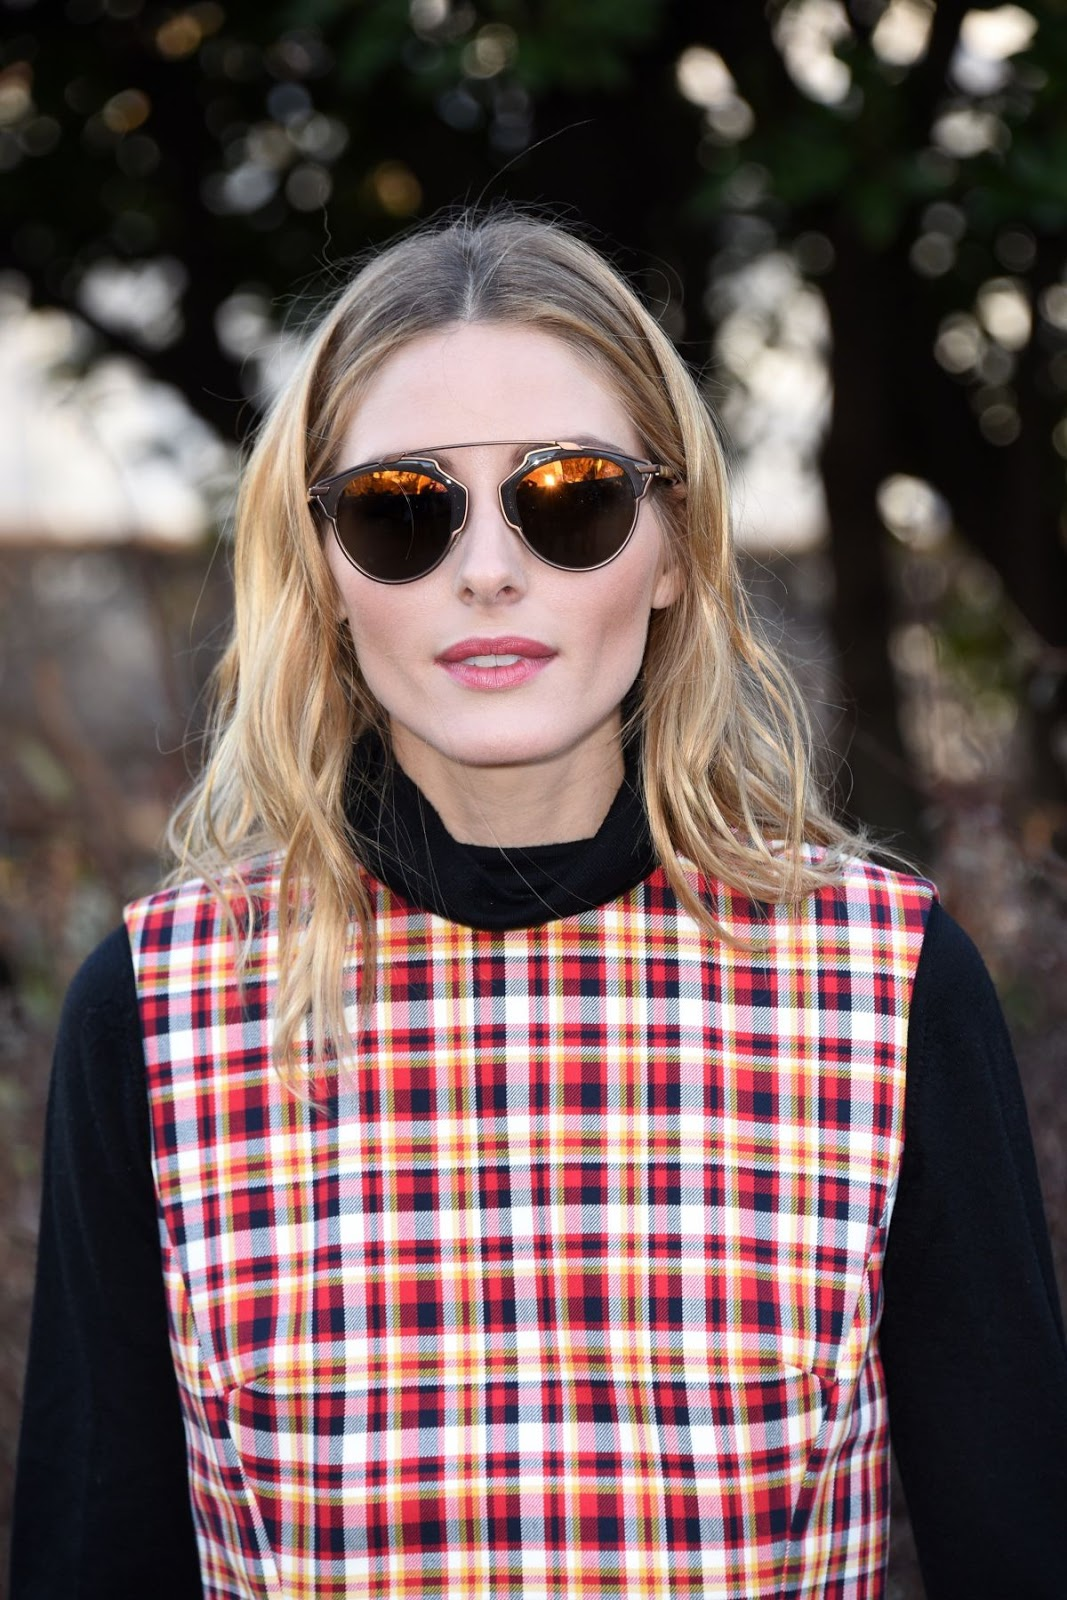 Olivia Palermo at Christian Dior Fashion Show Paris 2016